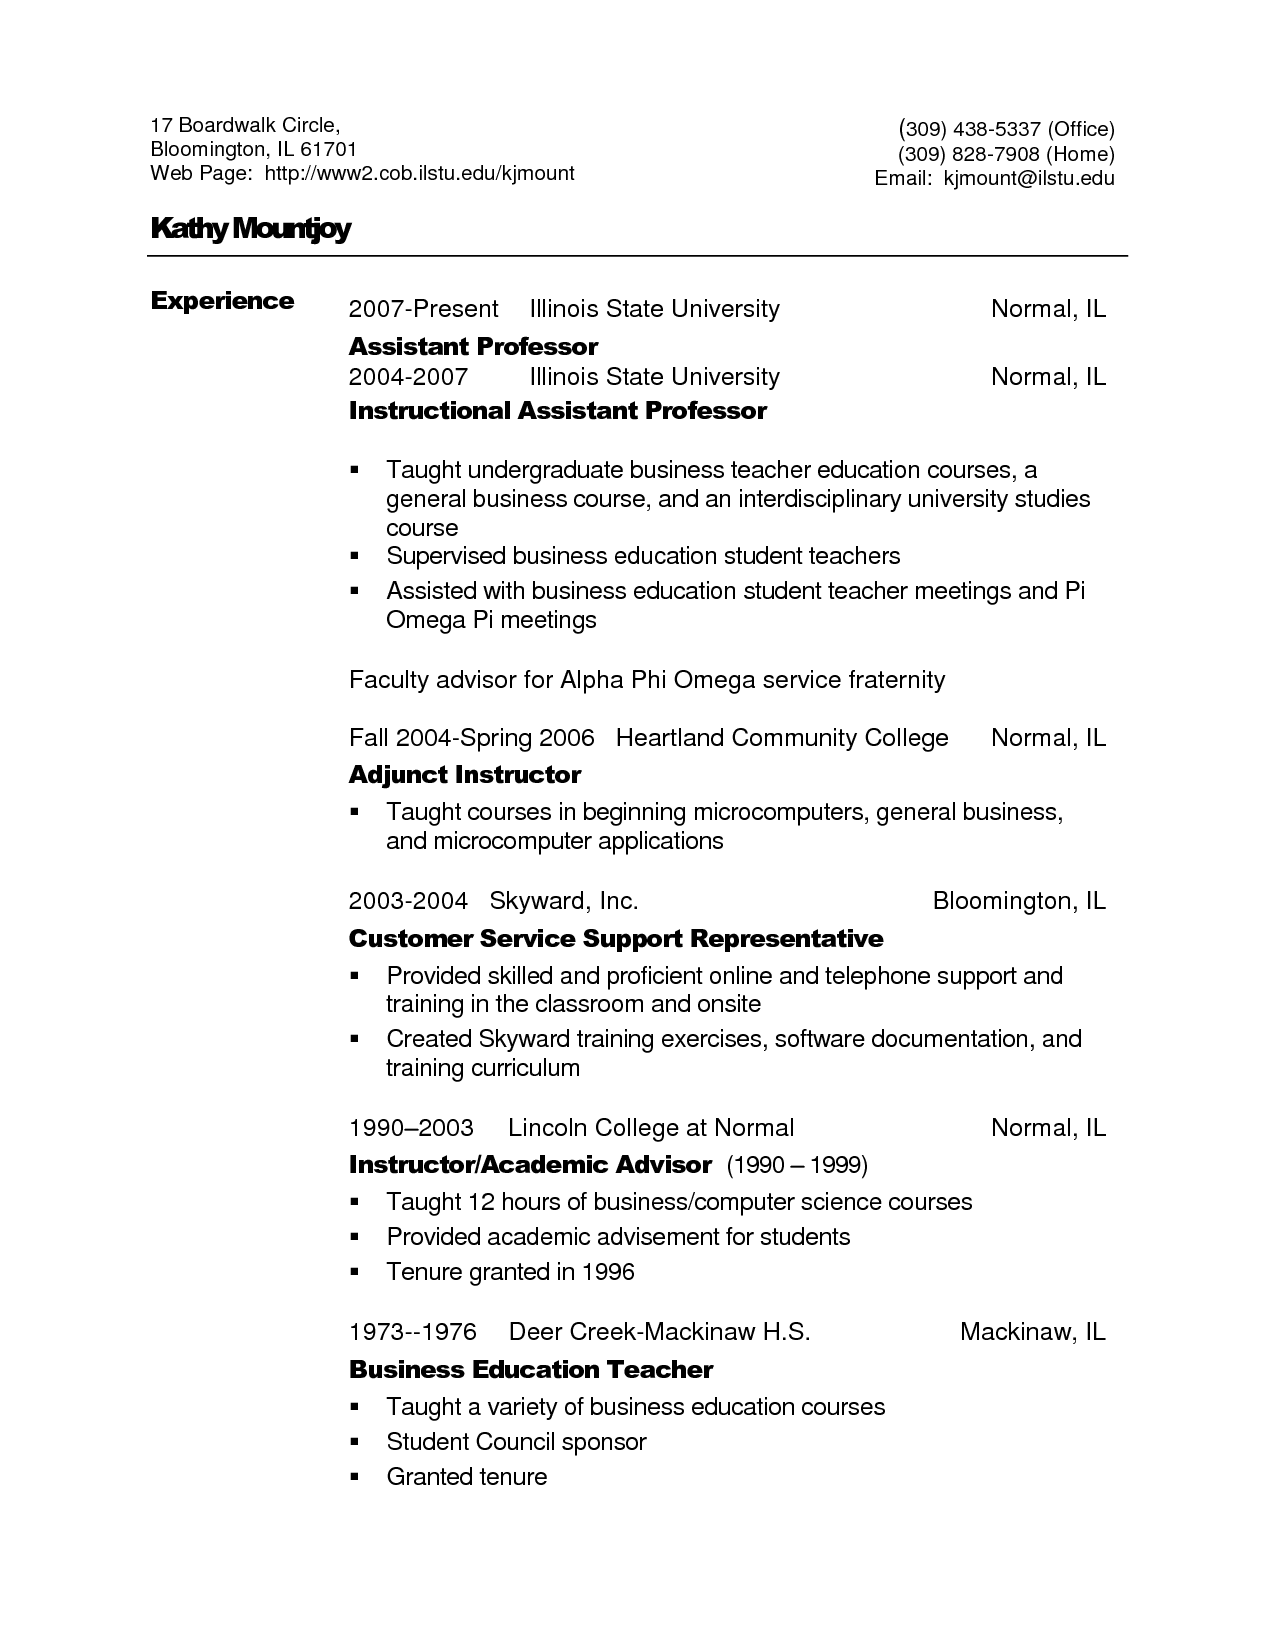 English resume template seeabruzzoresume templates cover letter english resume template seeabruzzoresume templates cover letter examples yelopaper Choice Image